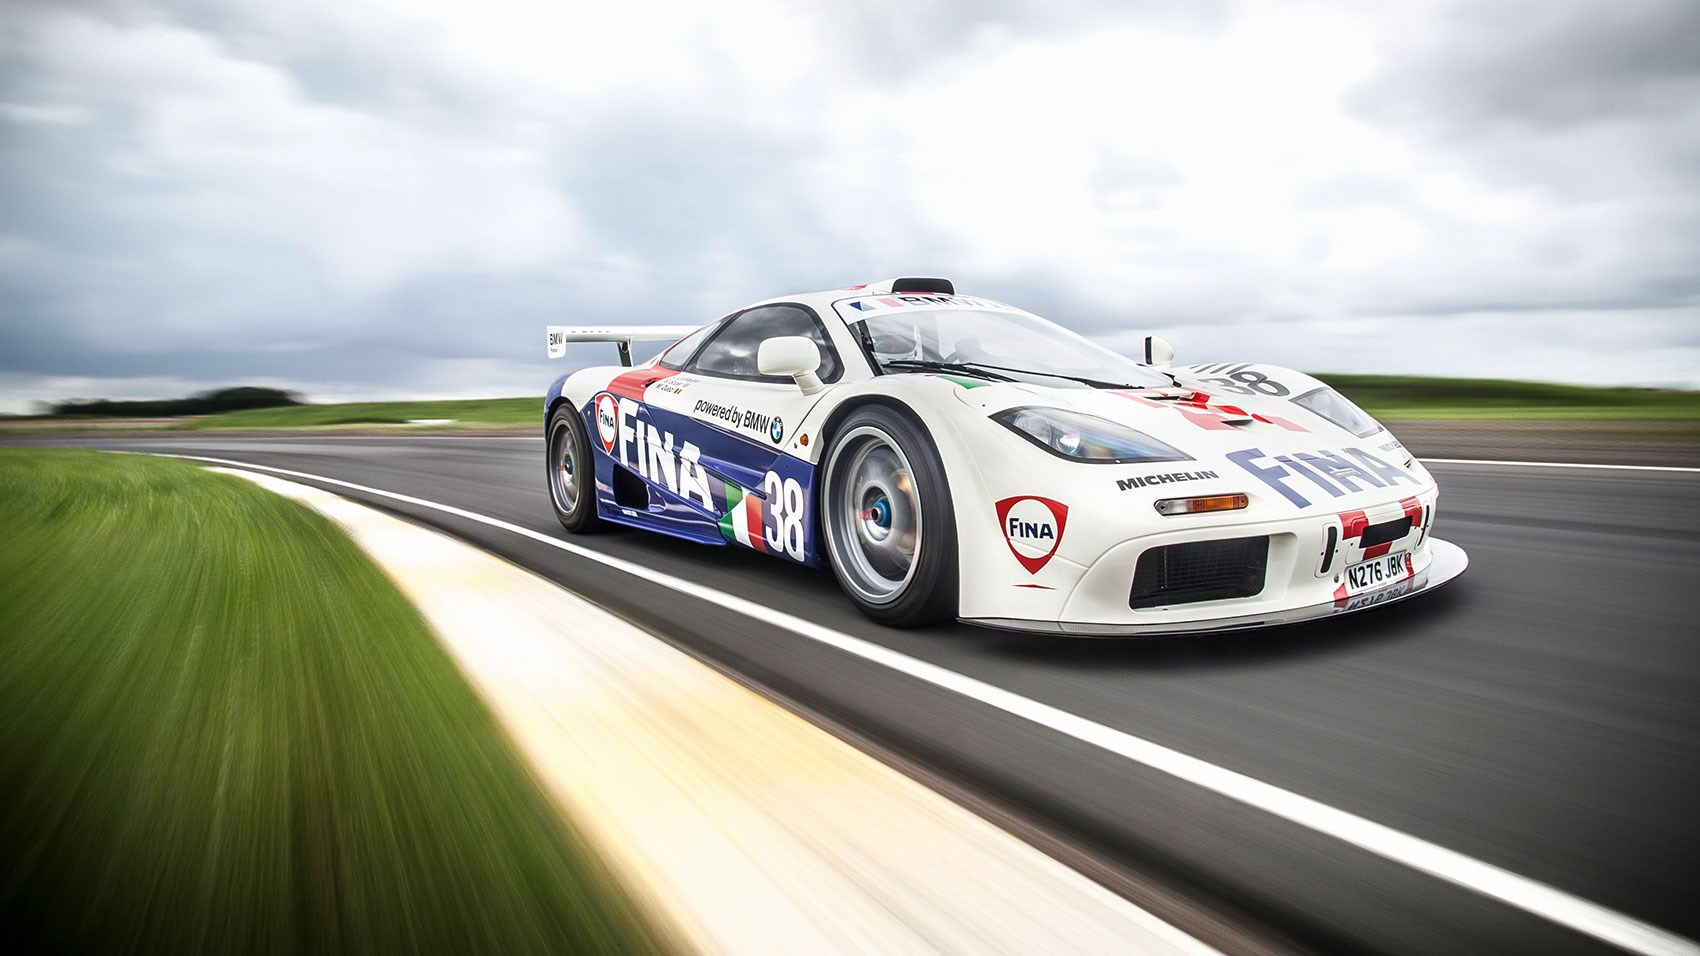 25 british cars to drive before you die: 2) mclaren f1, car+